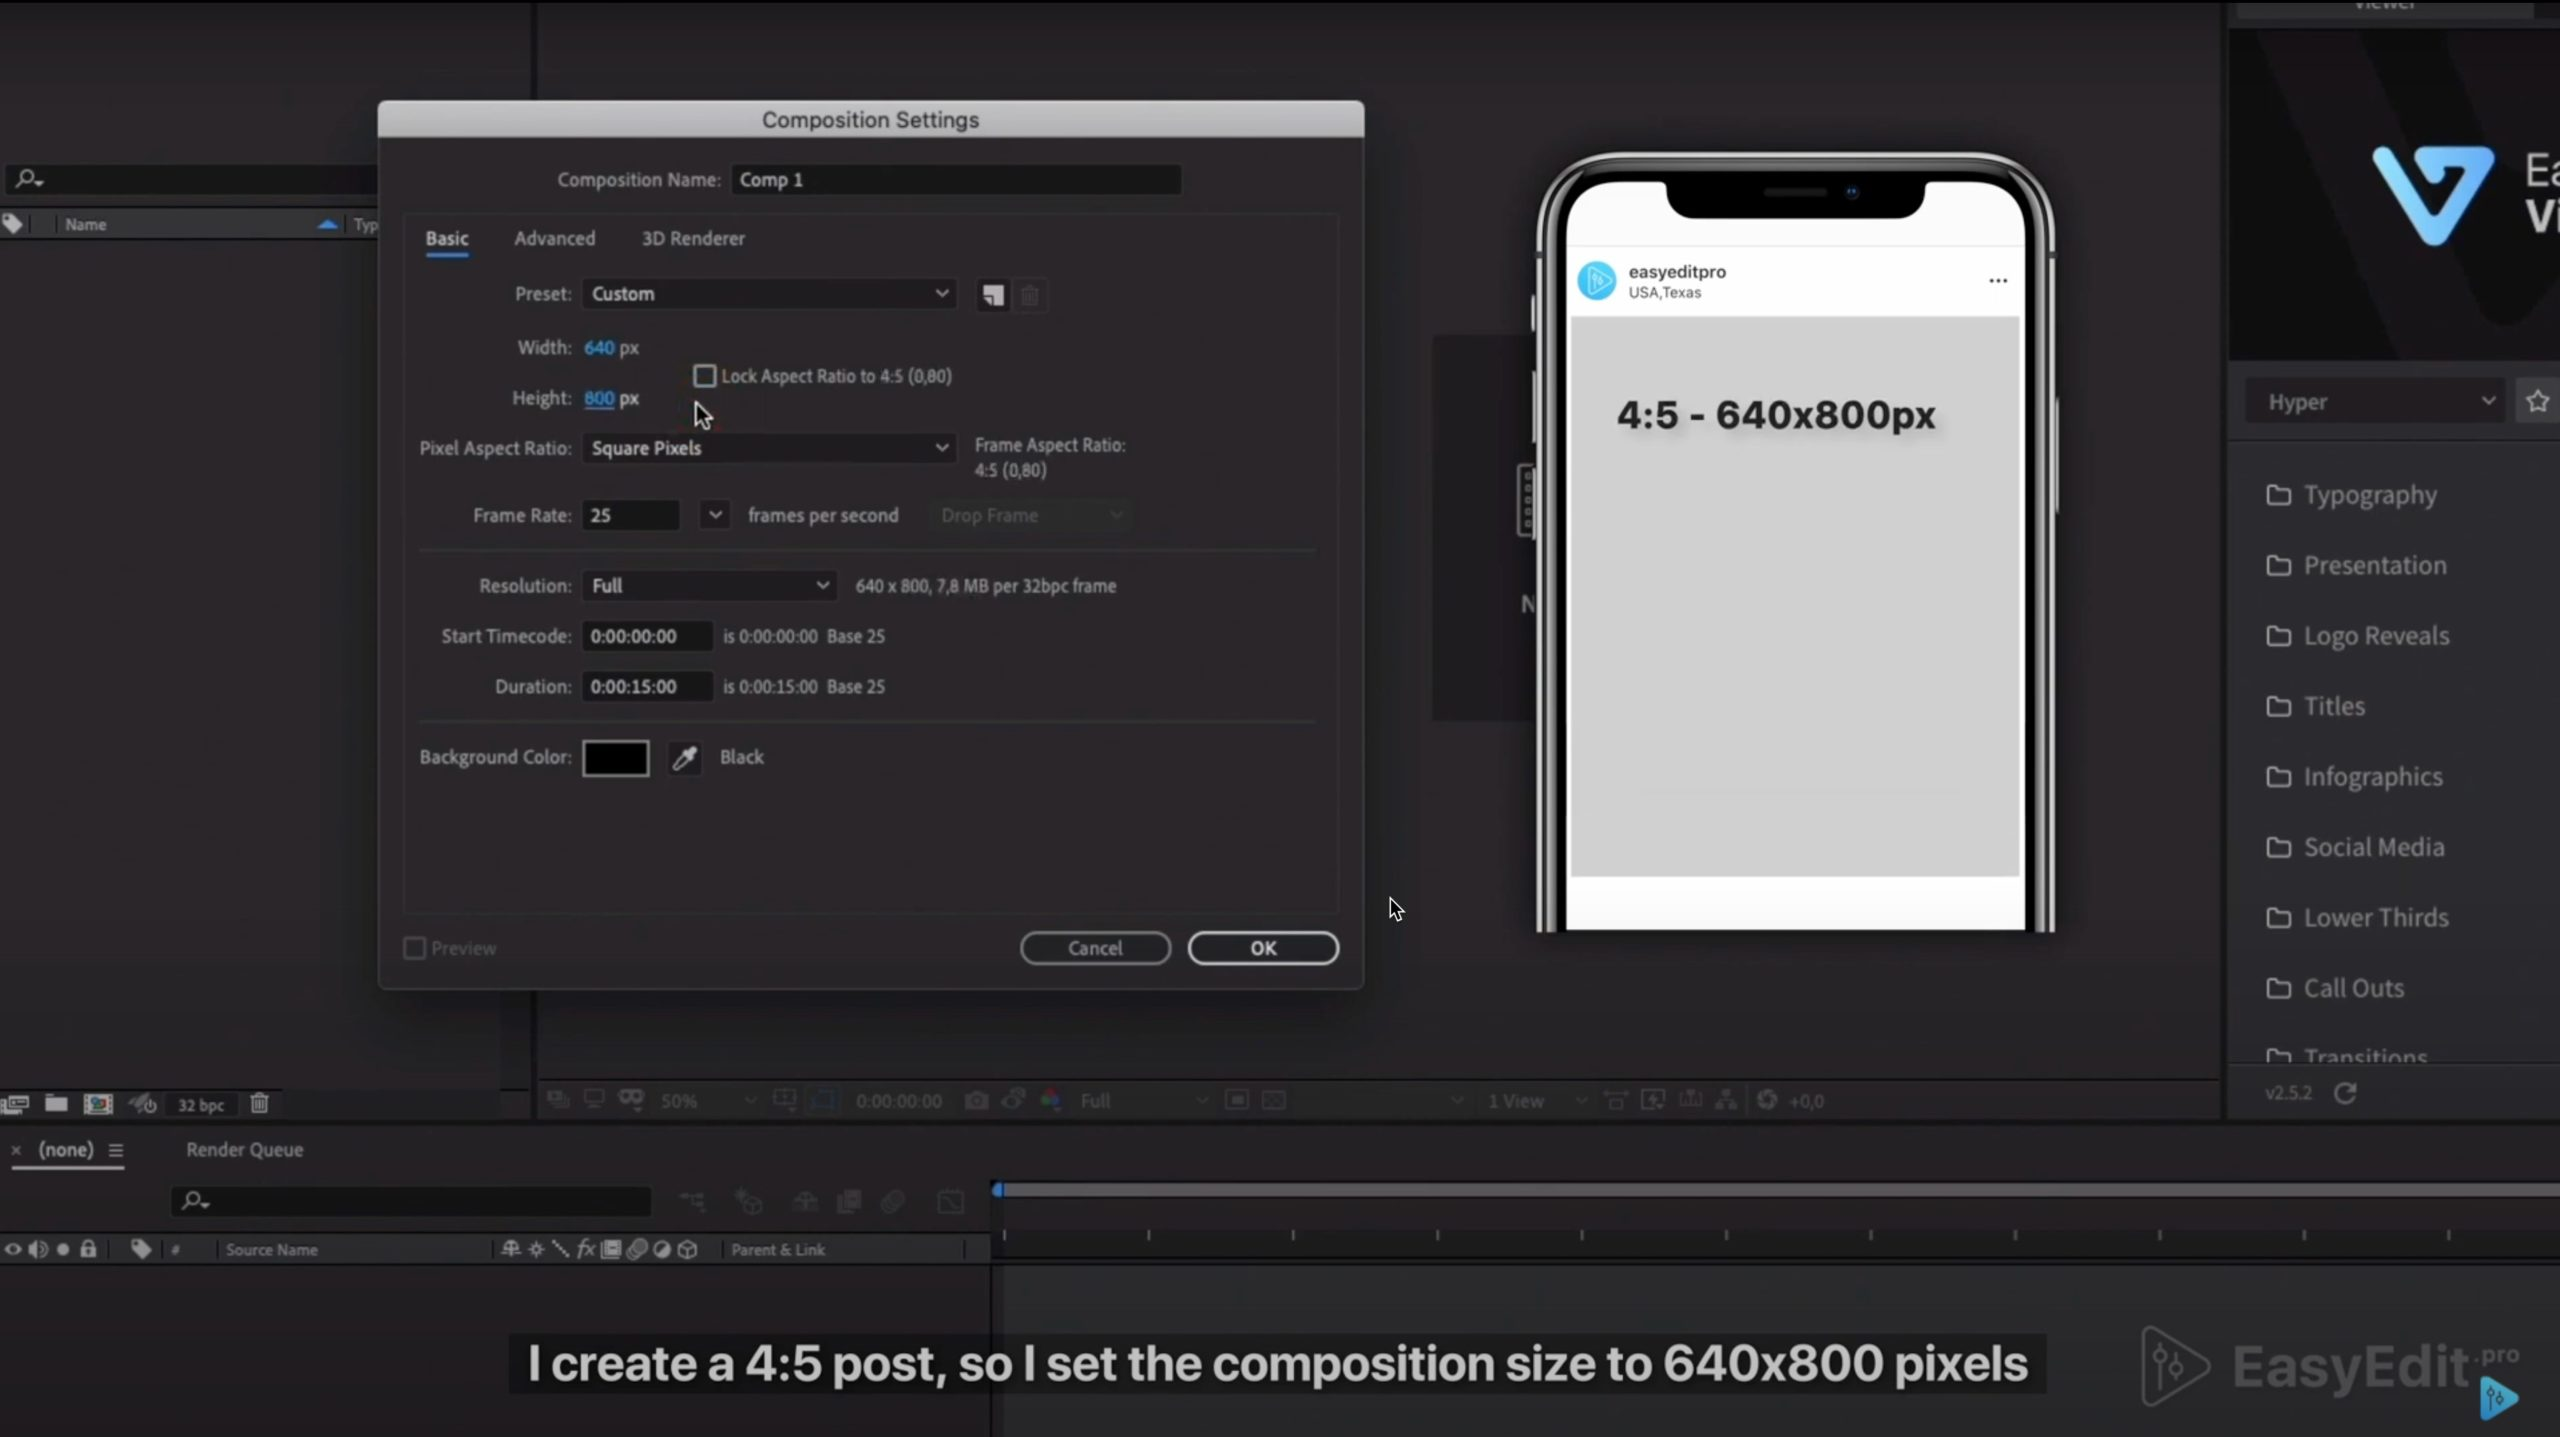 How To Export High Quality Video For Instagram Easyedit Pro